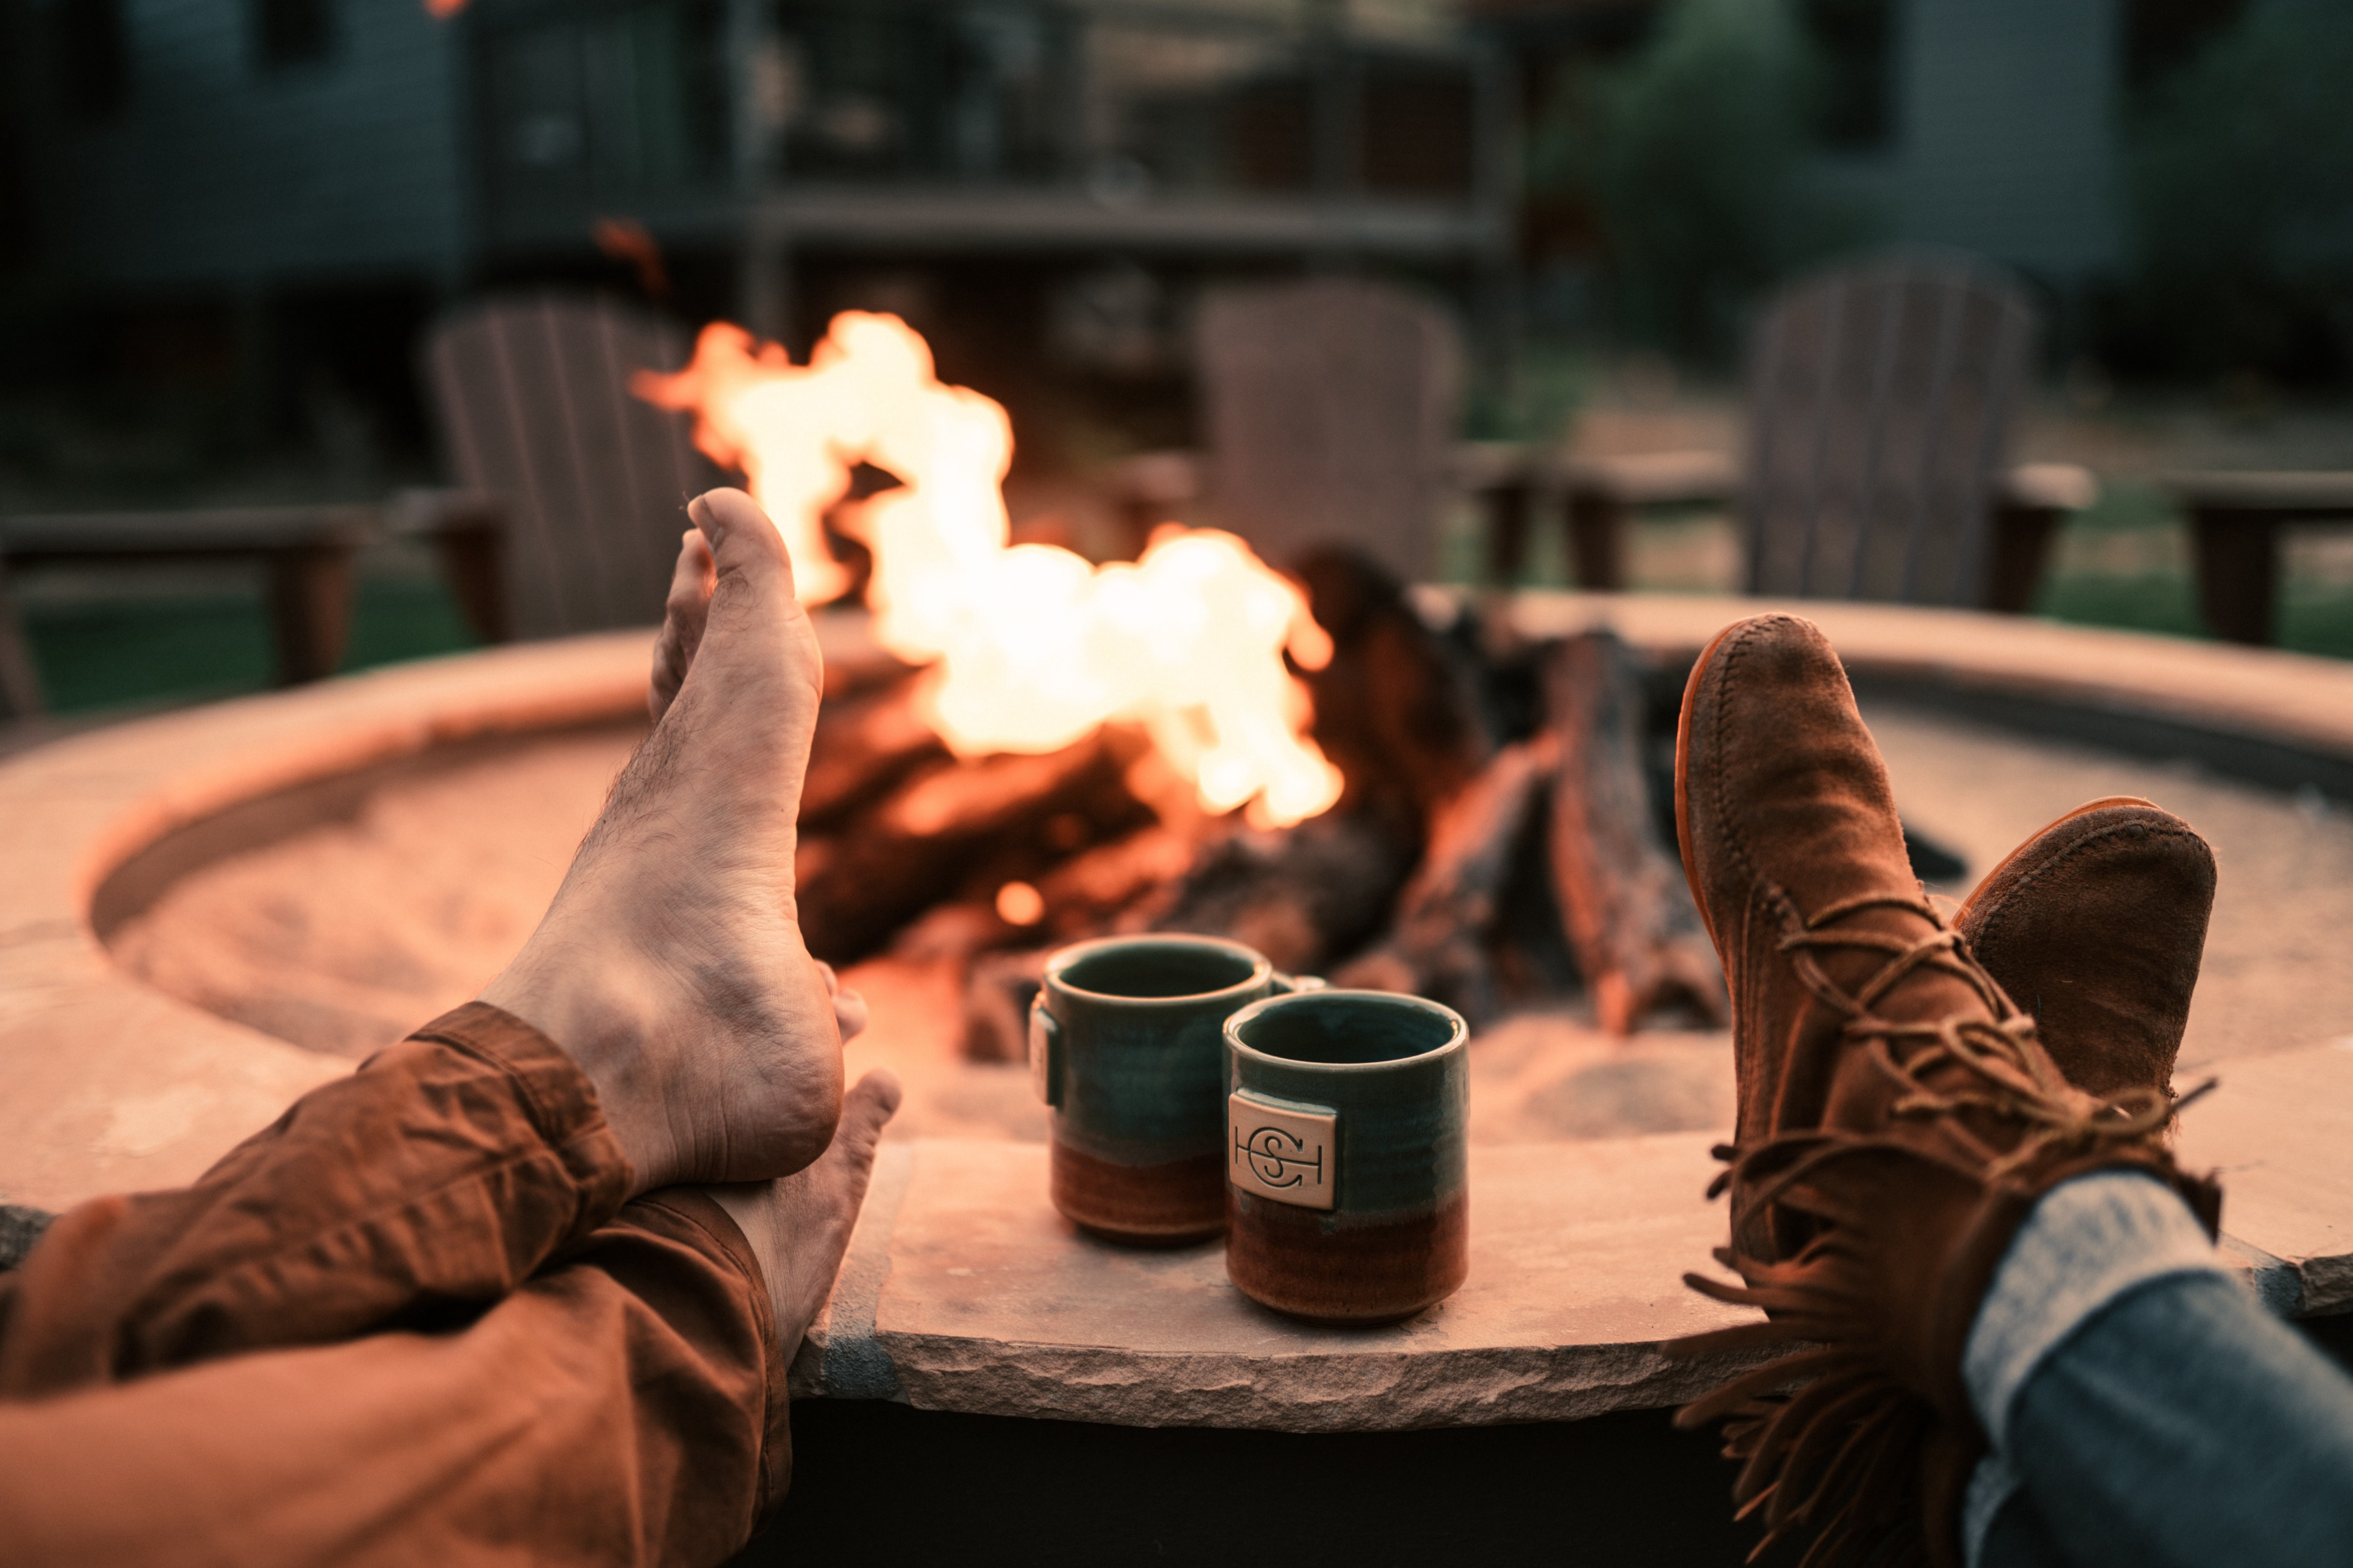 Two sets of feet rest on the edge of a large fire pit. Mugs sit between the feet. A fire burns in the background.